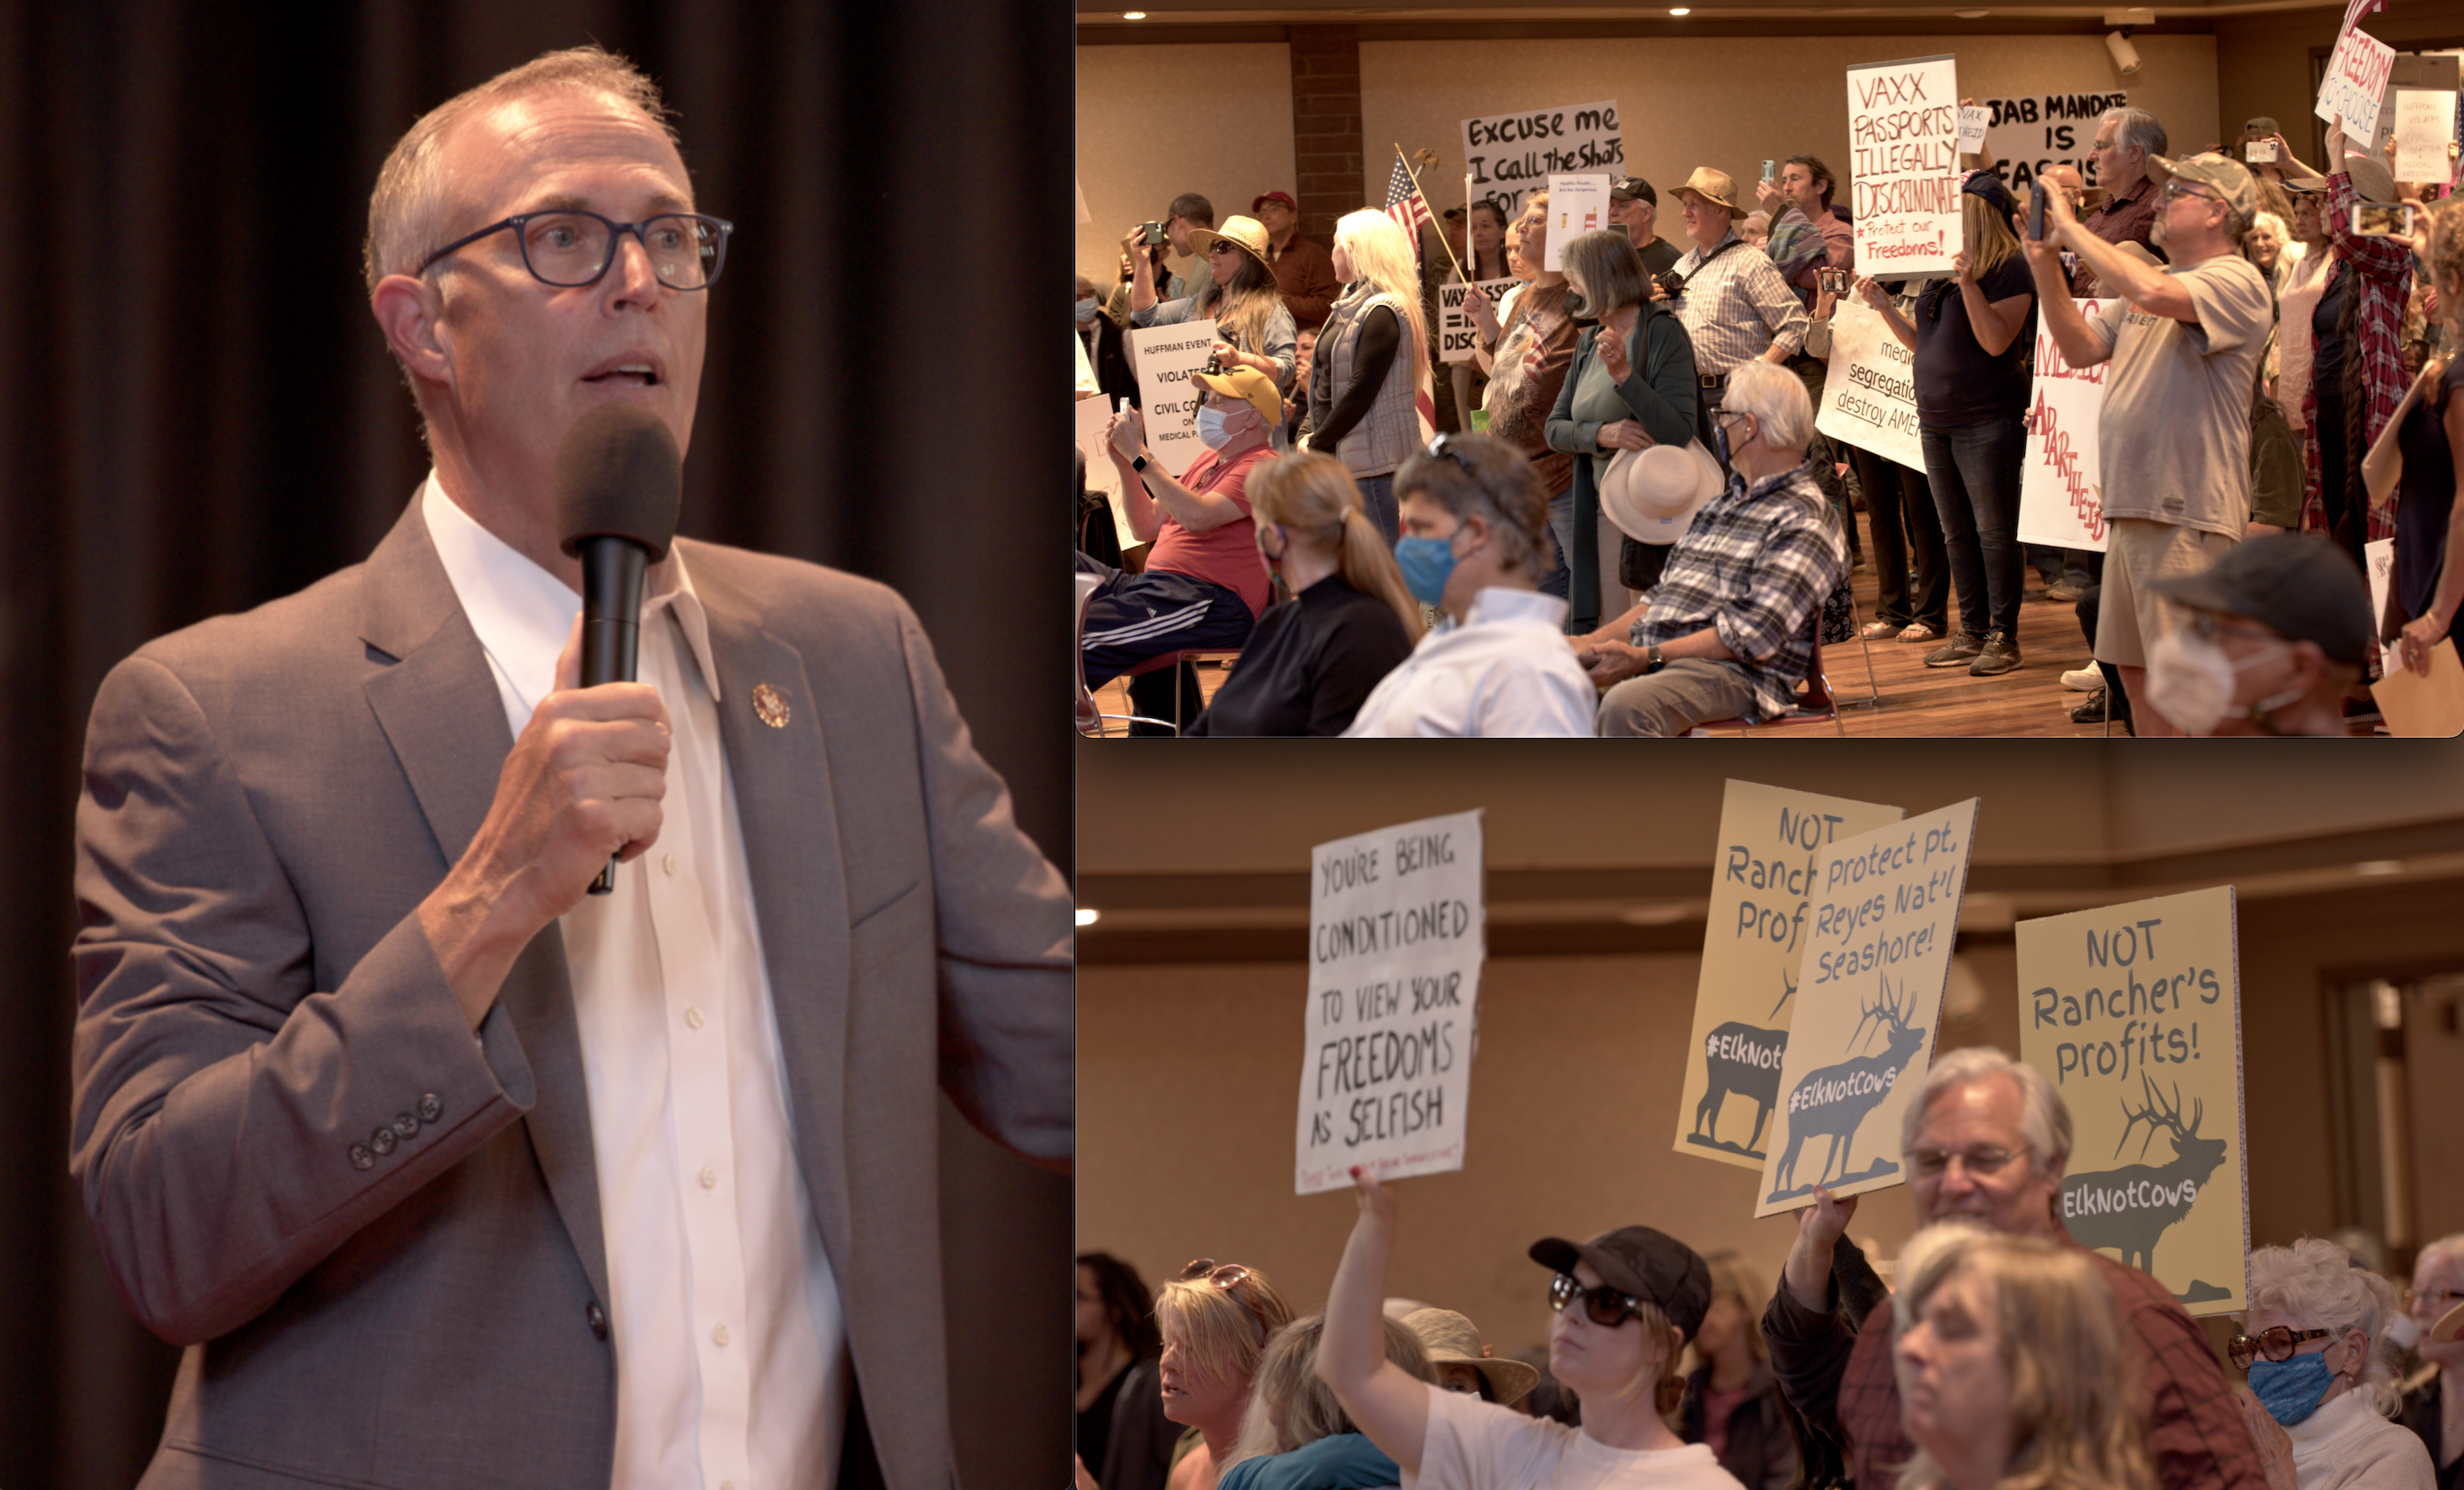 Editorial: Rep. Jared Huffman's Attempt to Block EnviroNews from Public Town Hall Meeting was Unethical